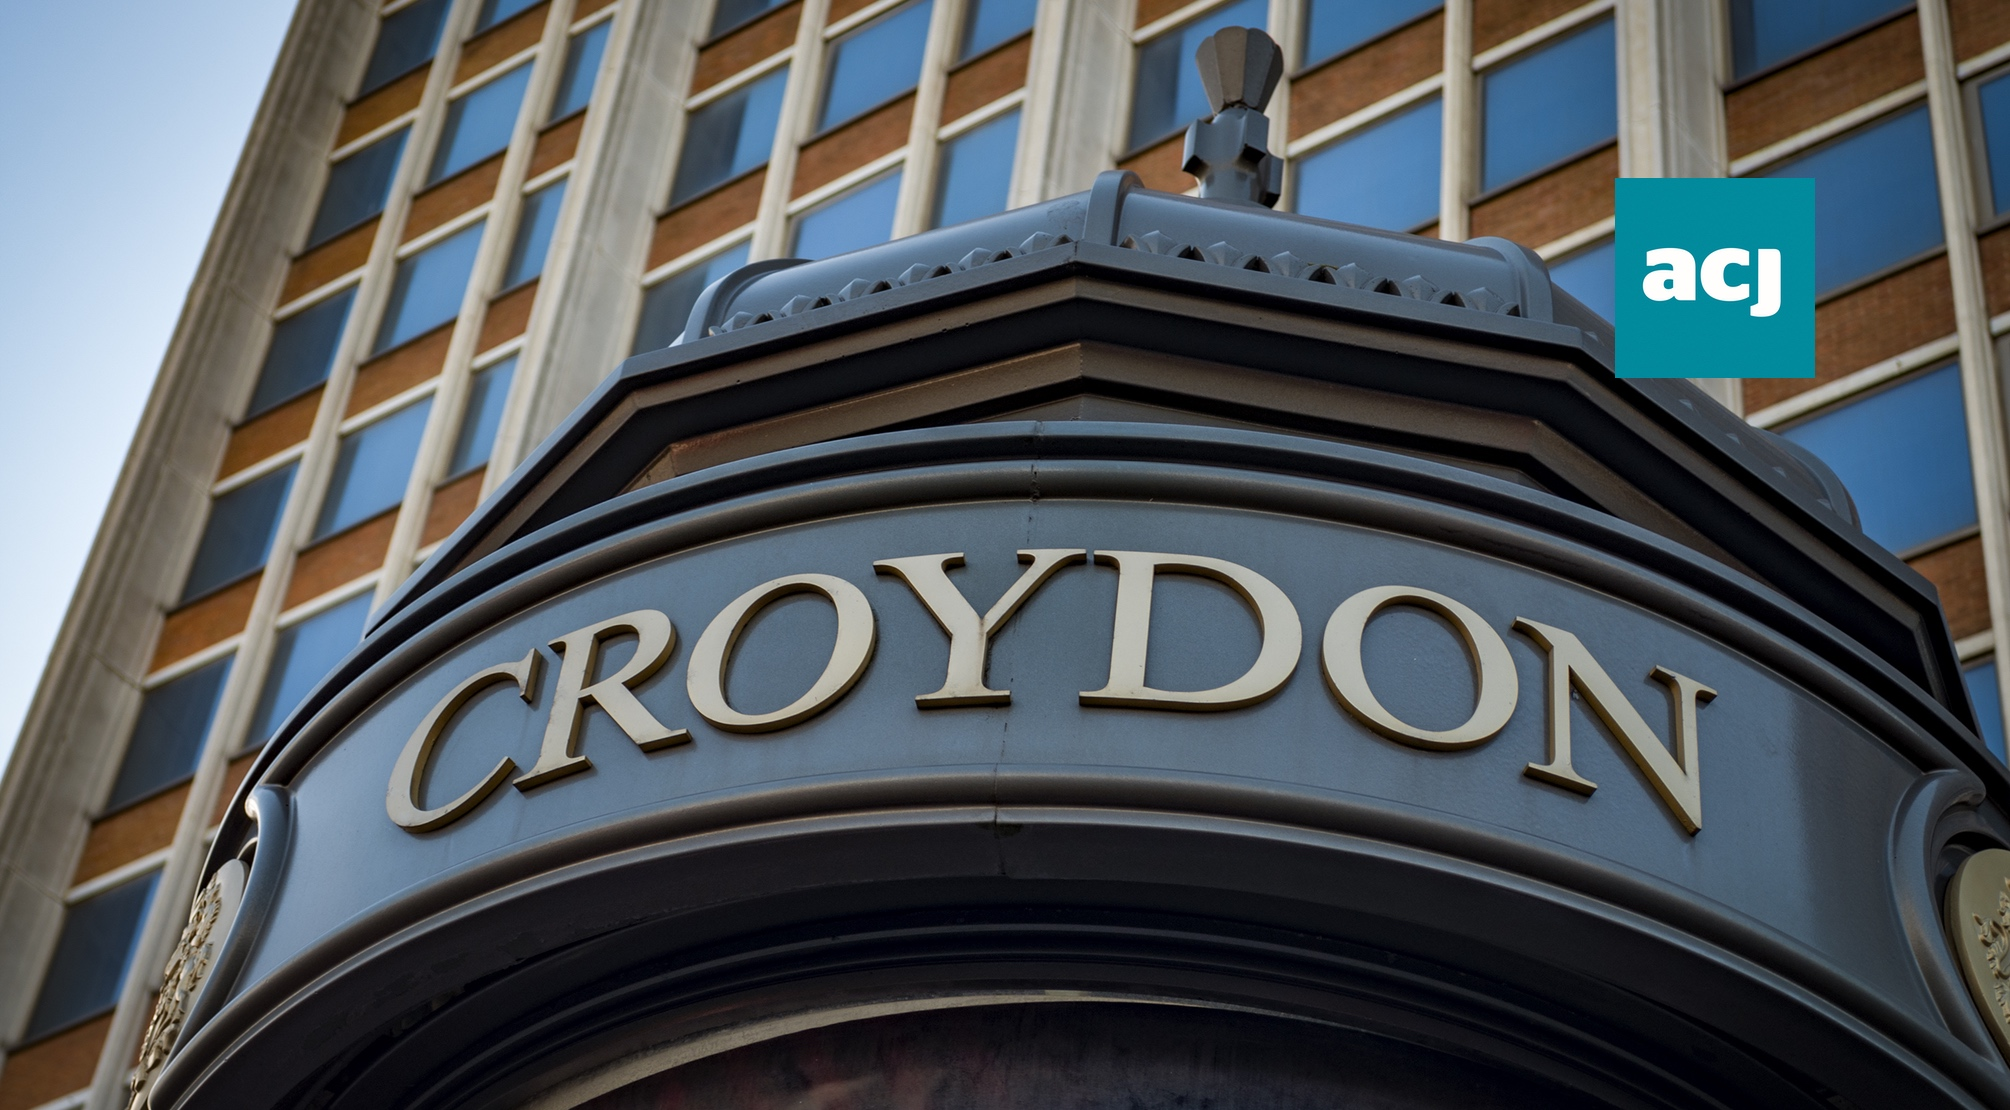 Paving the way for integrated services in Croydon